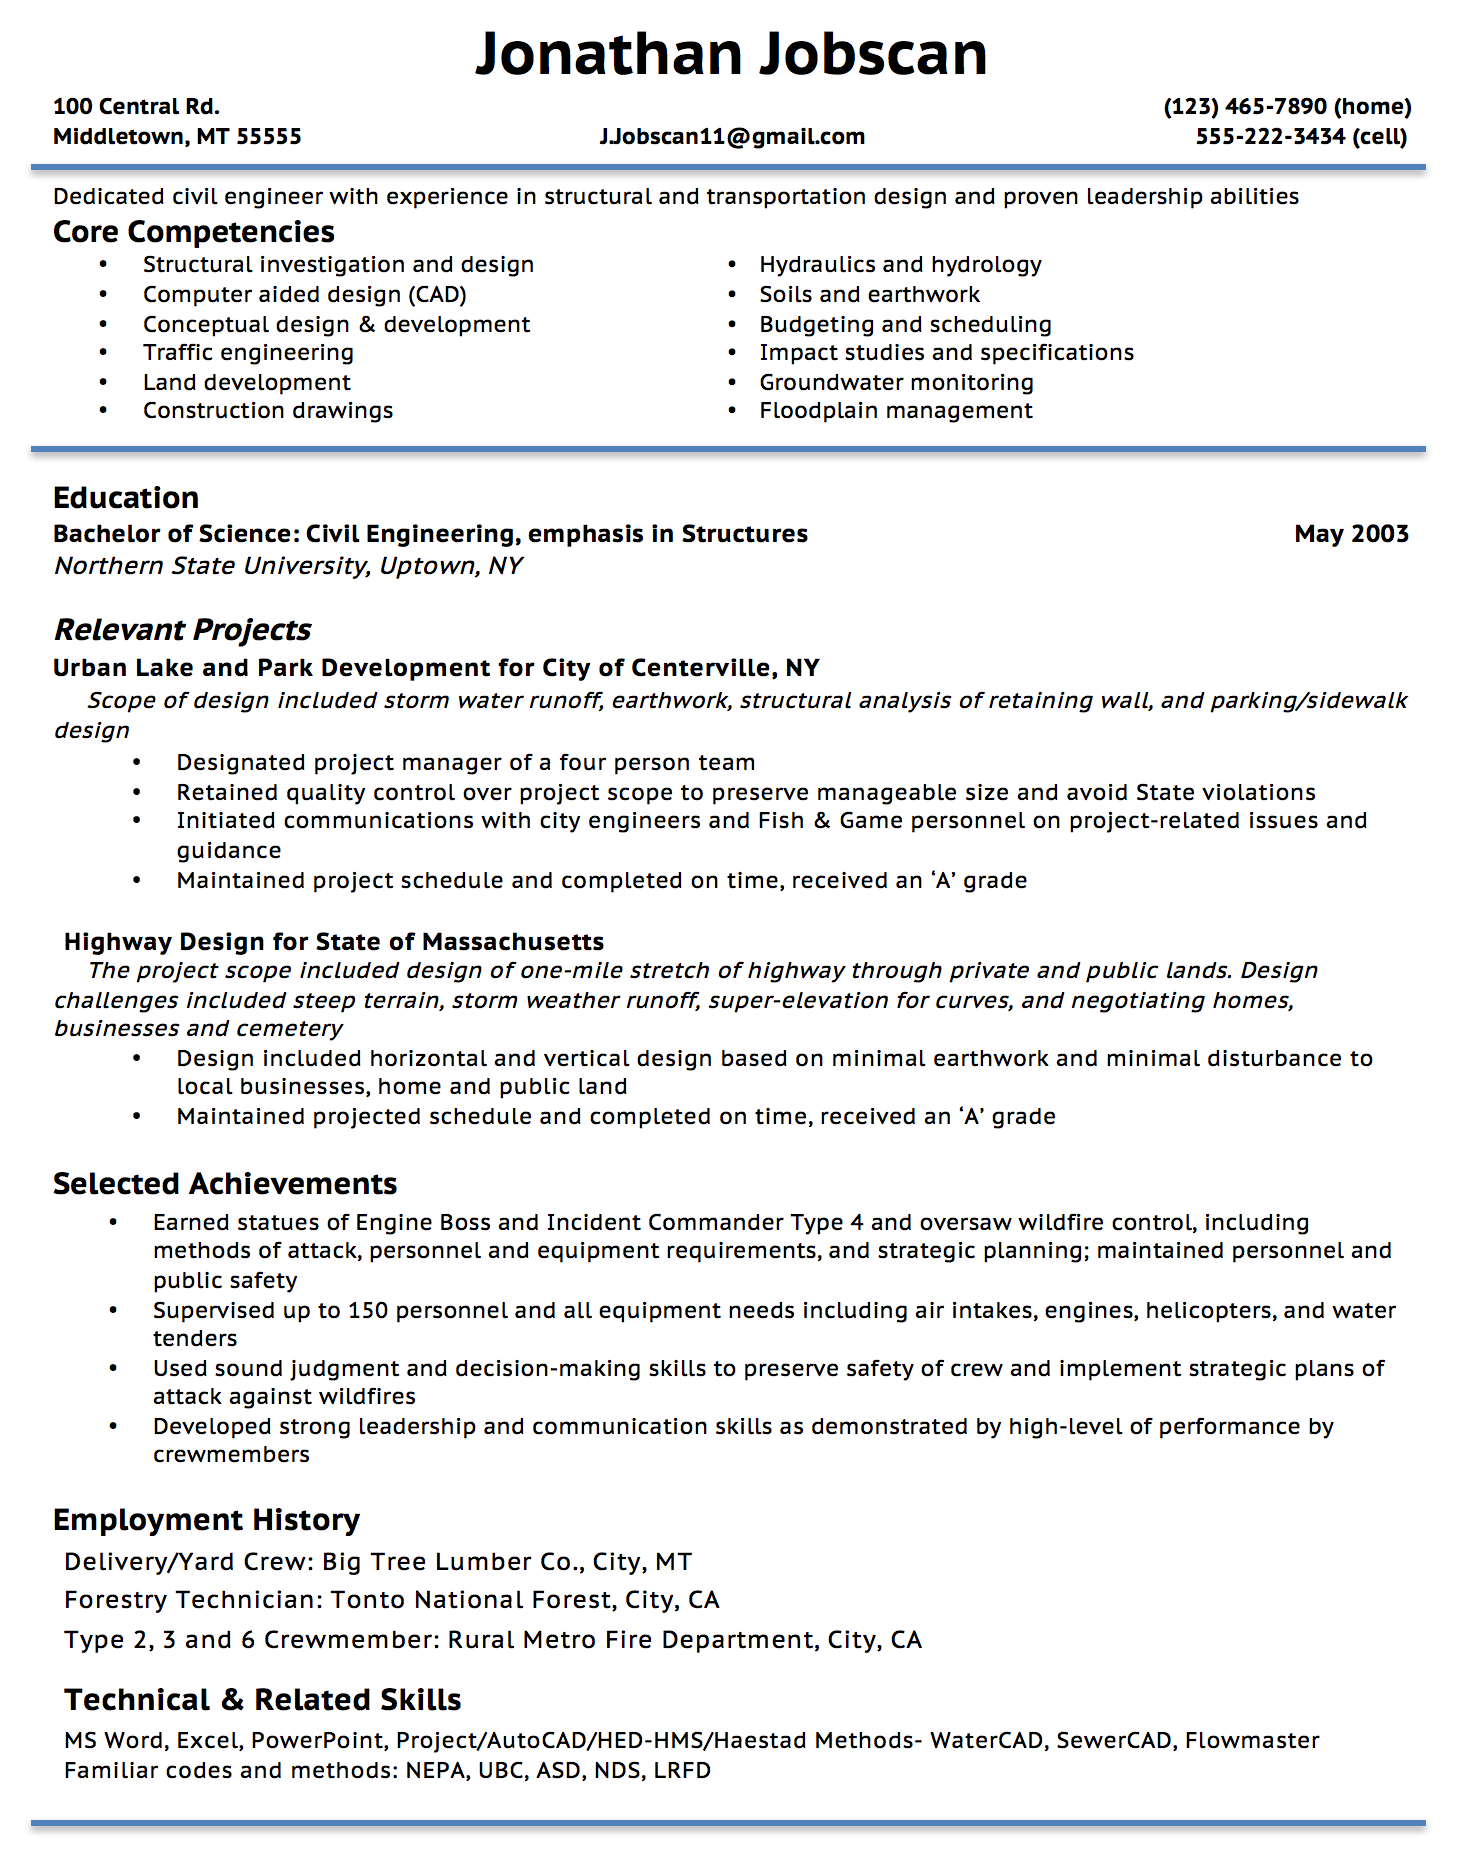 Opposenewapstandardsus  Marvellous Resume Writing Guide  Jobscan With Exquisite Example Of A Functional Resume Format With Cool Graphic Design Resume Objective Also Military Transition Resume In Addition Professional Resume Review And Barista Skills Resume As Well As Radiology Resume Additionally Resume Objective Samples For Any Job From Jobscanco With Opposenewapstandardsus  Exquisite Resume Writing Guide  Jobscan With Cool Example Of A Functional Resume Format And Marvellous Graphic Design Resume Objective Also Military Transition Resume In Addition Professional Resume Review From Jobscanco